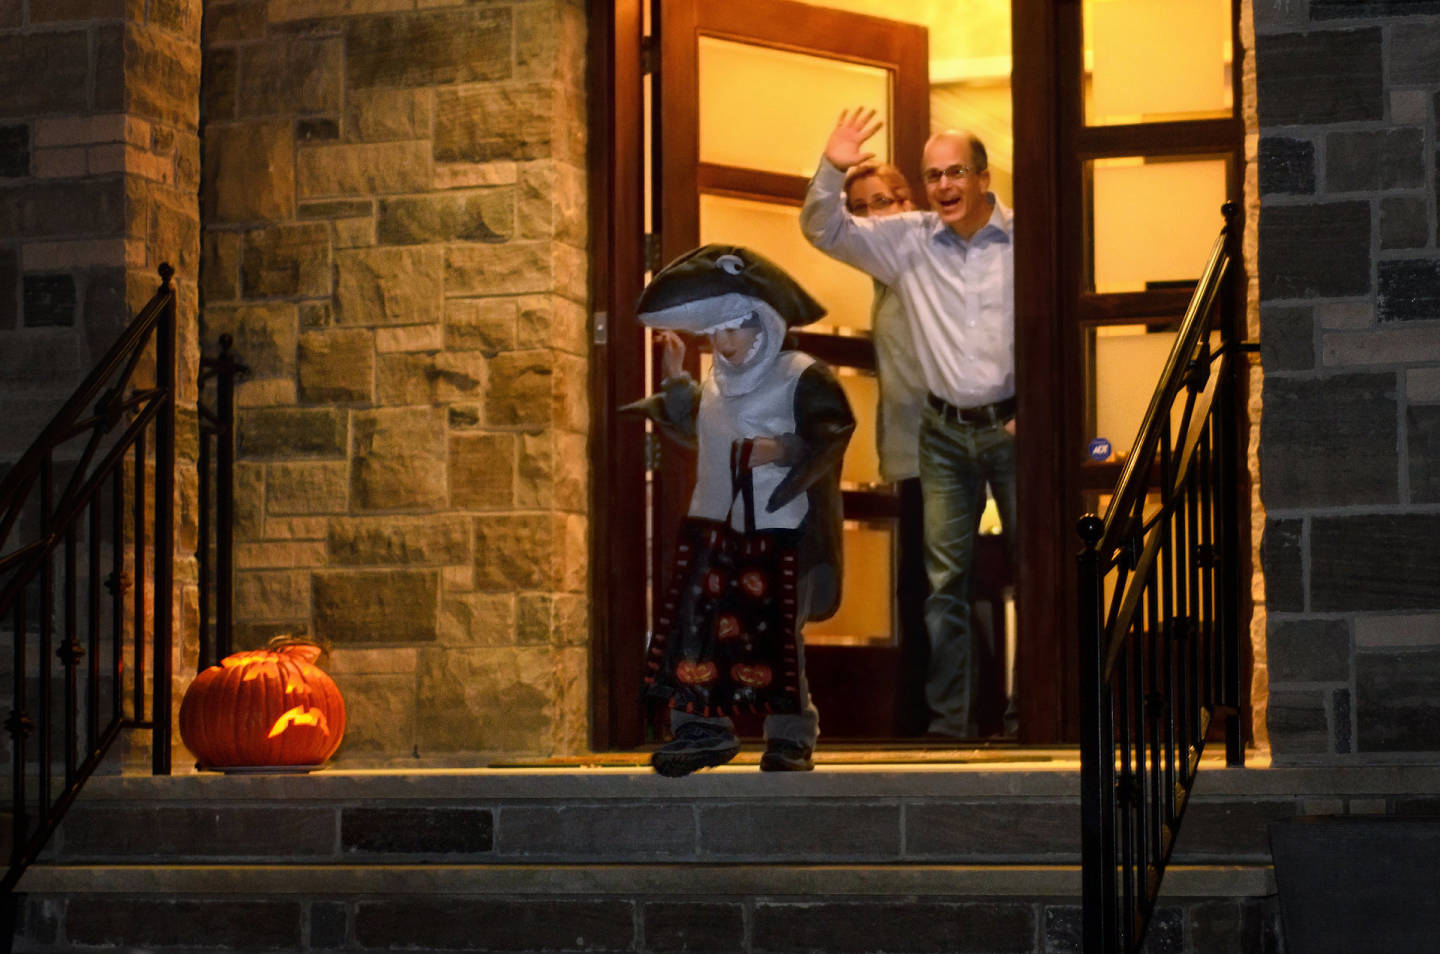 Halloween Trick or Treat in Toronto, Canada